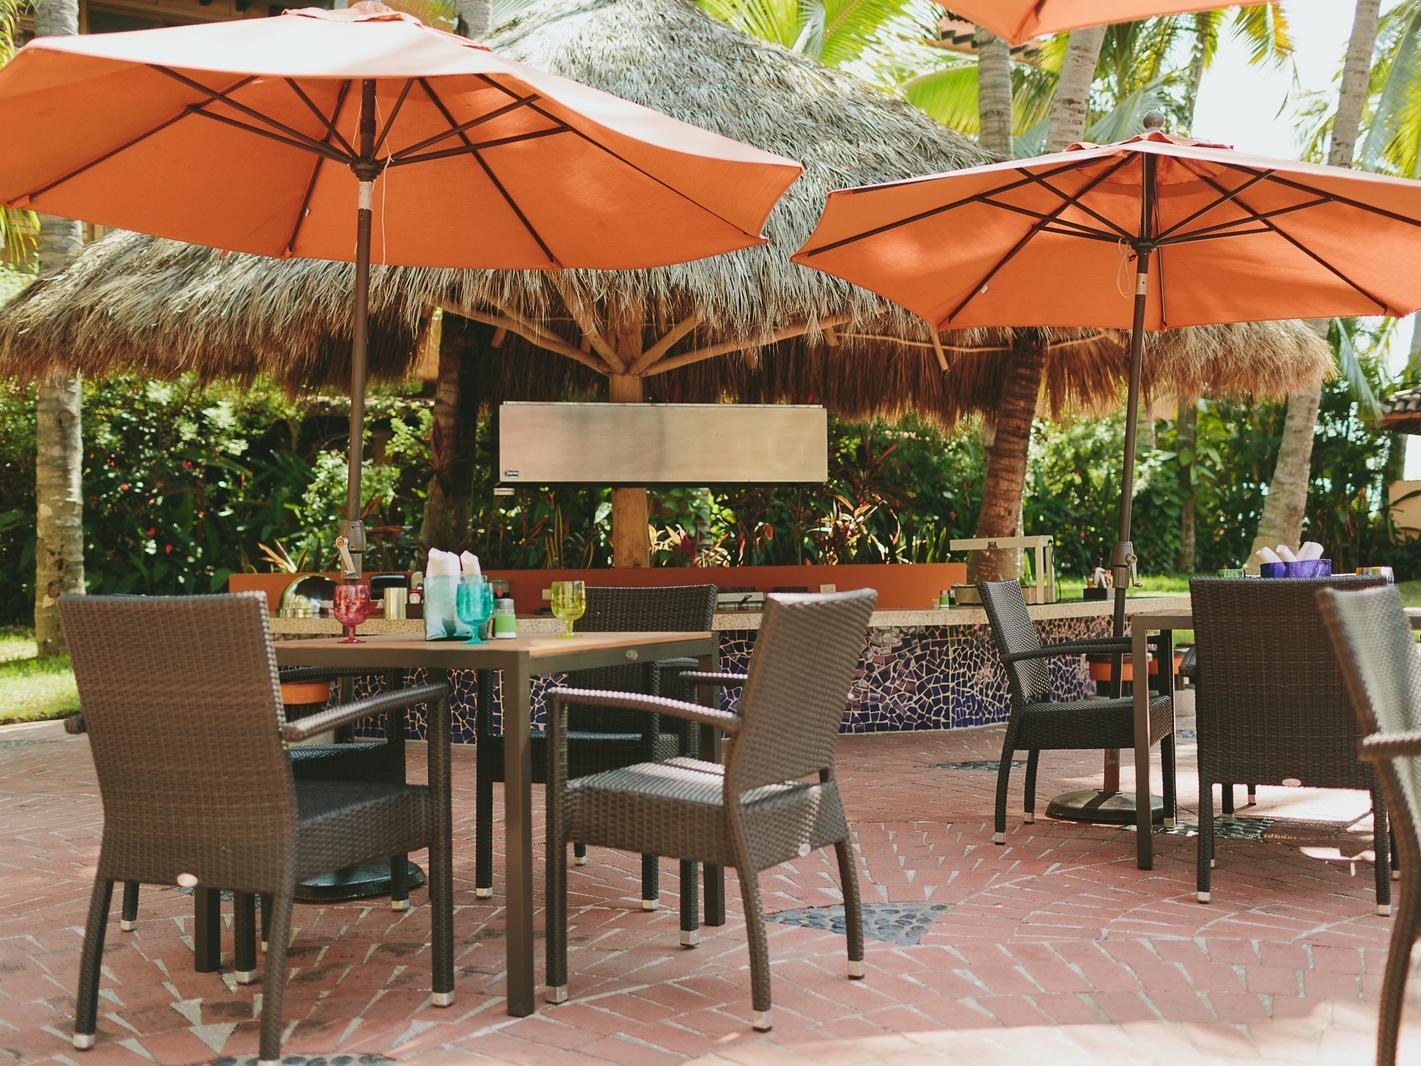 outdoor restaurant with tables, chairs with umbrellas